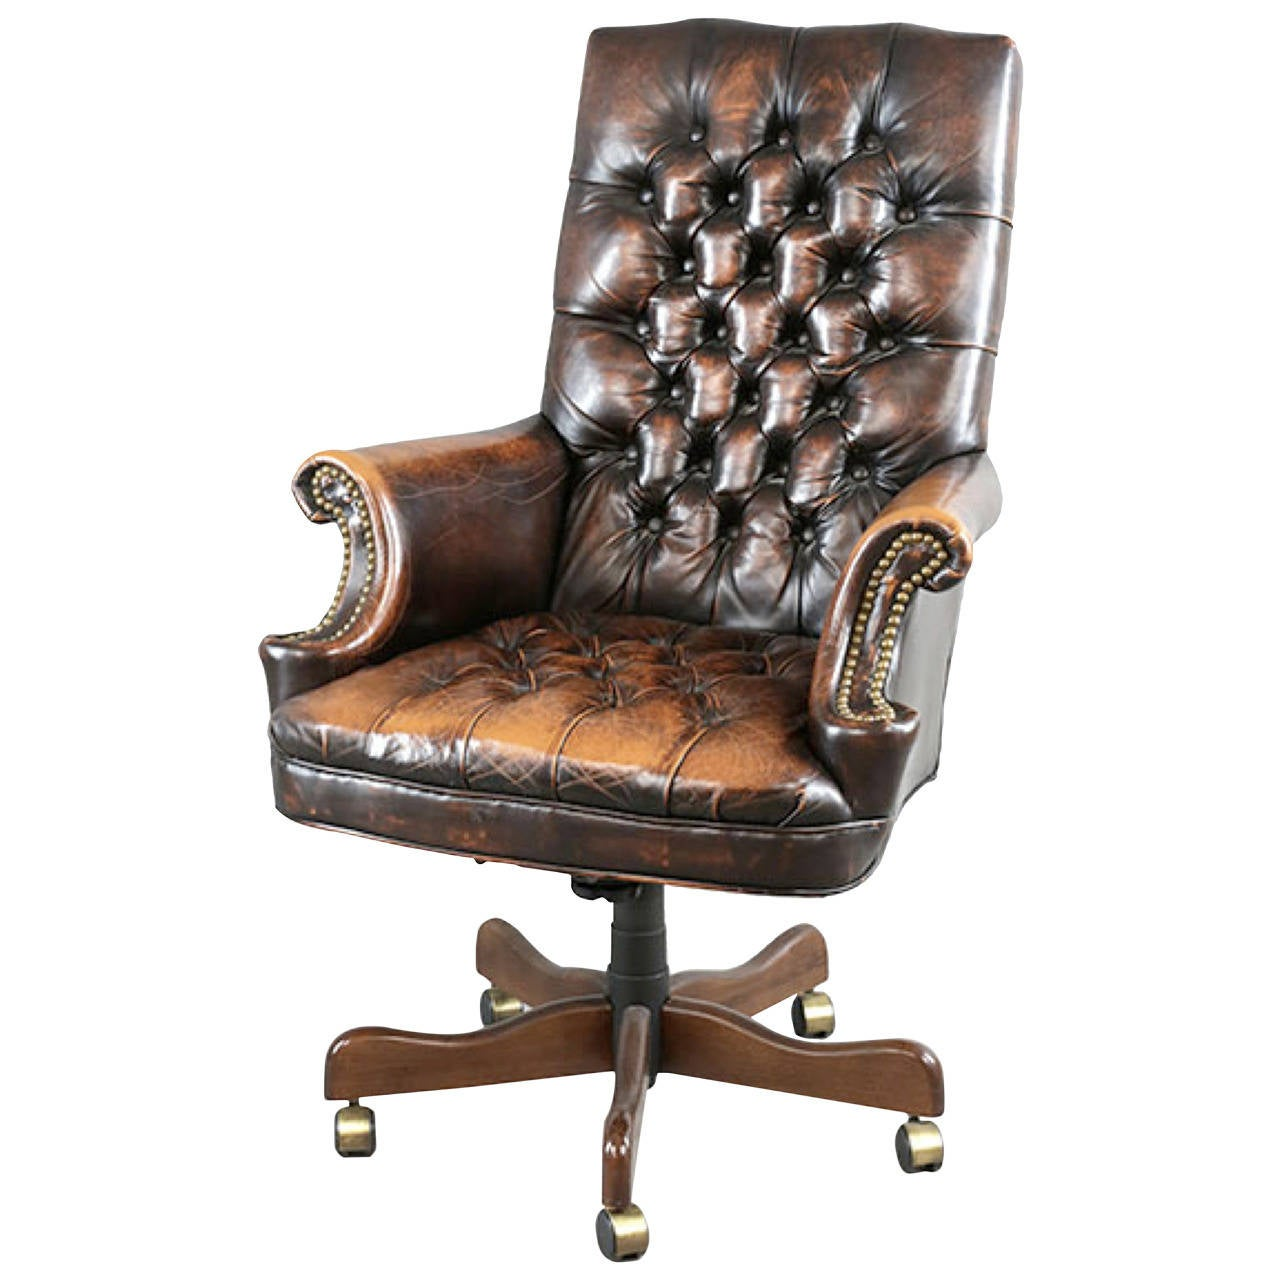 Executive Chair Leather Executive Chair With Worn Patina At 1stdibs